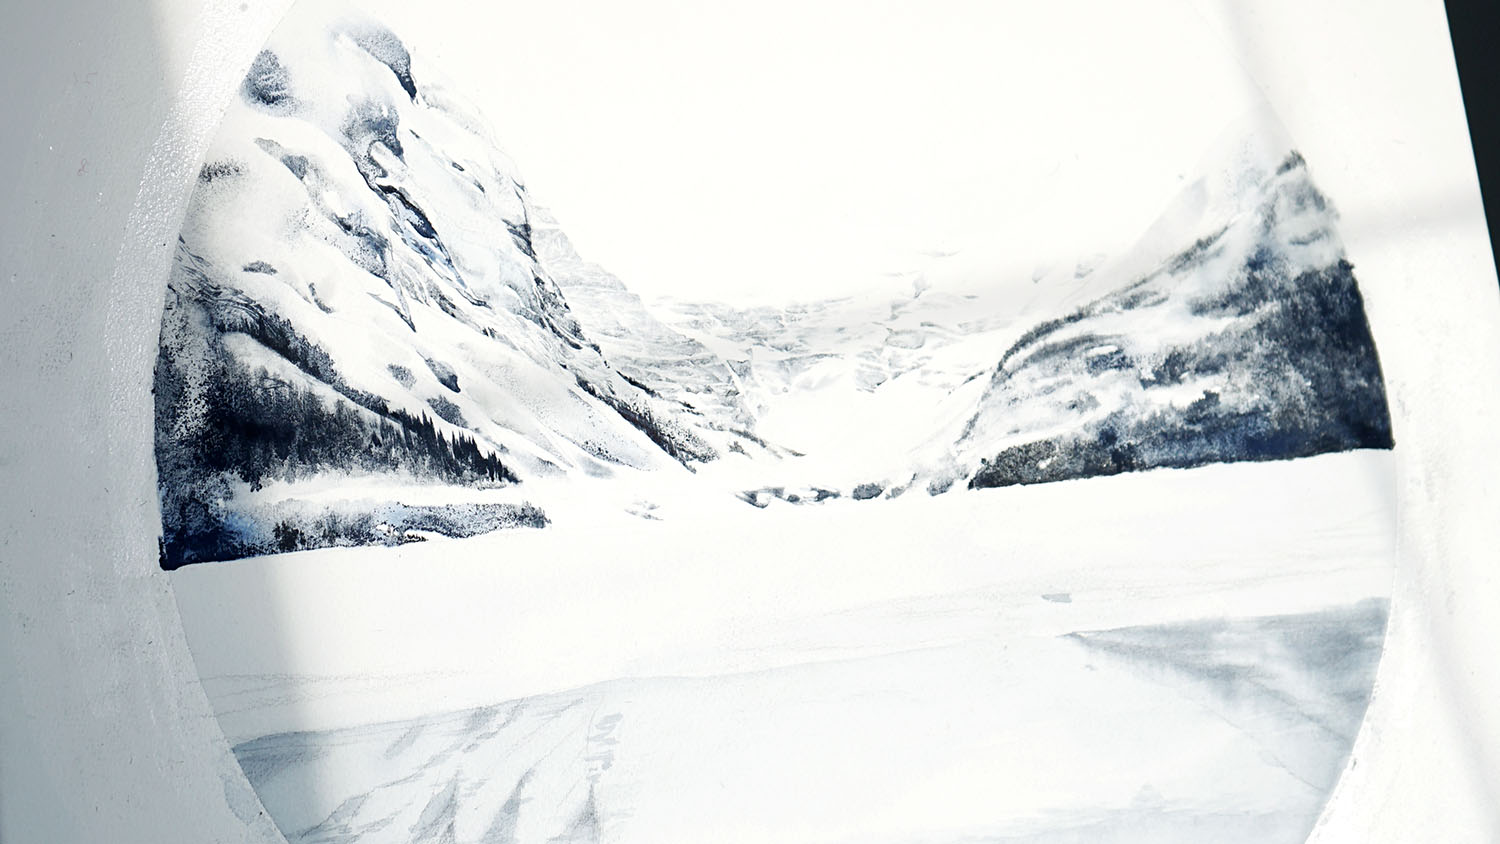 Lake Louise painting process 4437s.jpg